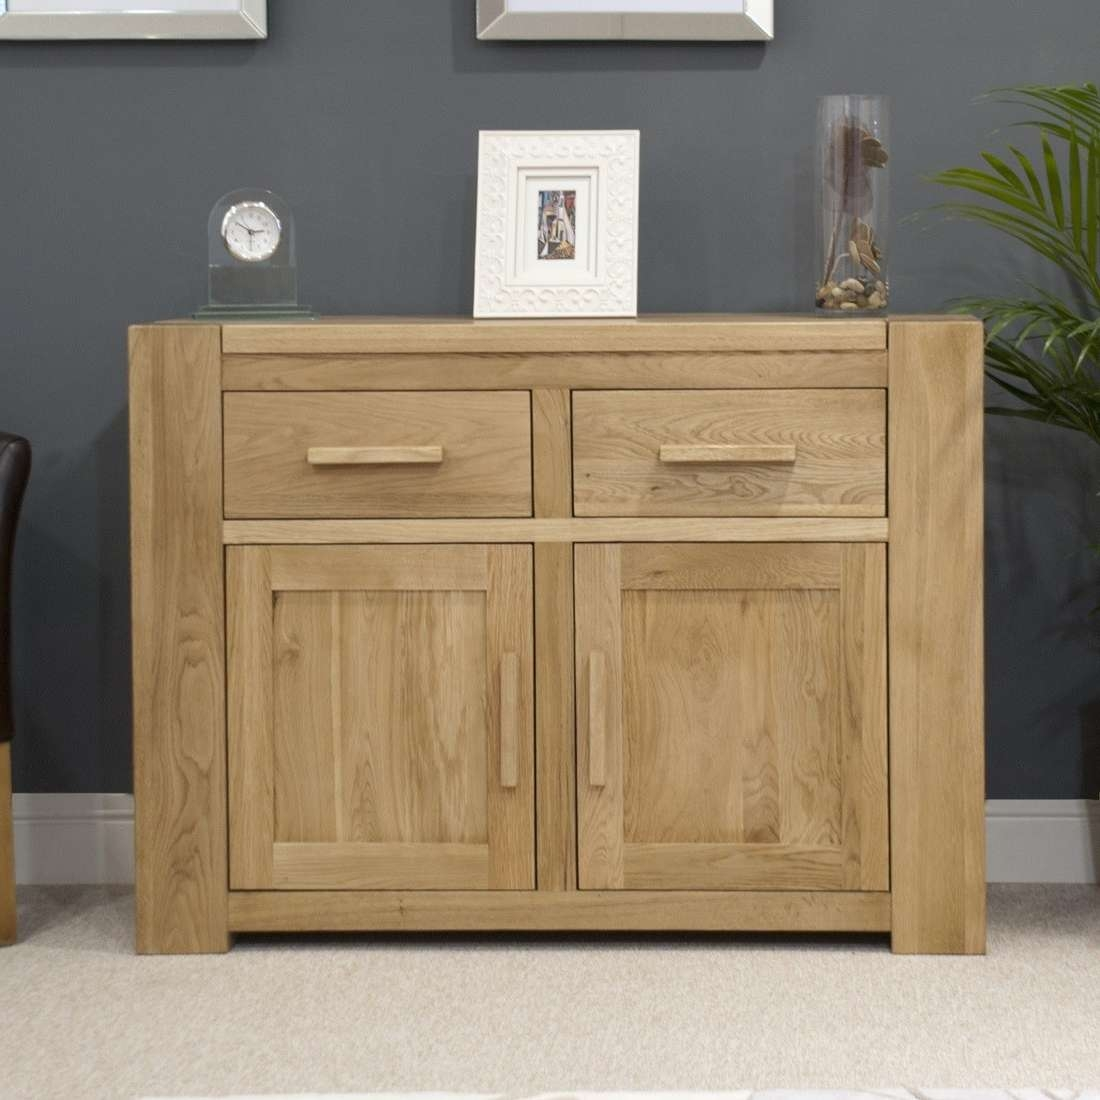 Elegant Small Solid Oak Sideboard – Buildsimplehome Throughout Cream And Oak Sideboards (Gallery 14 of 20)